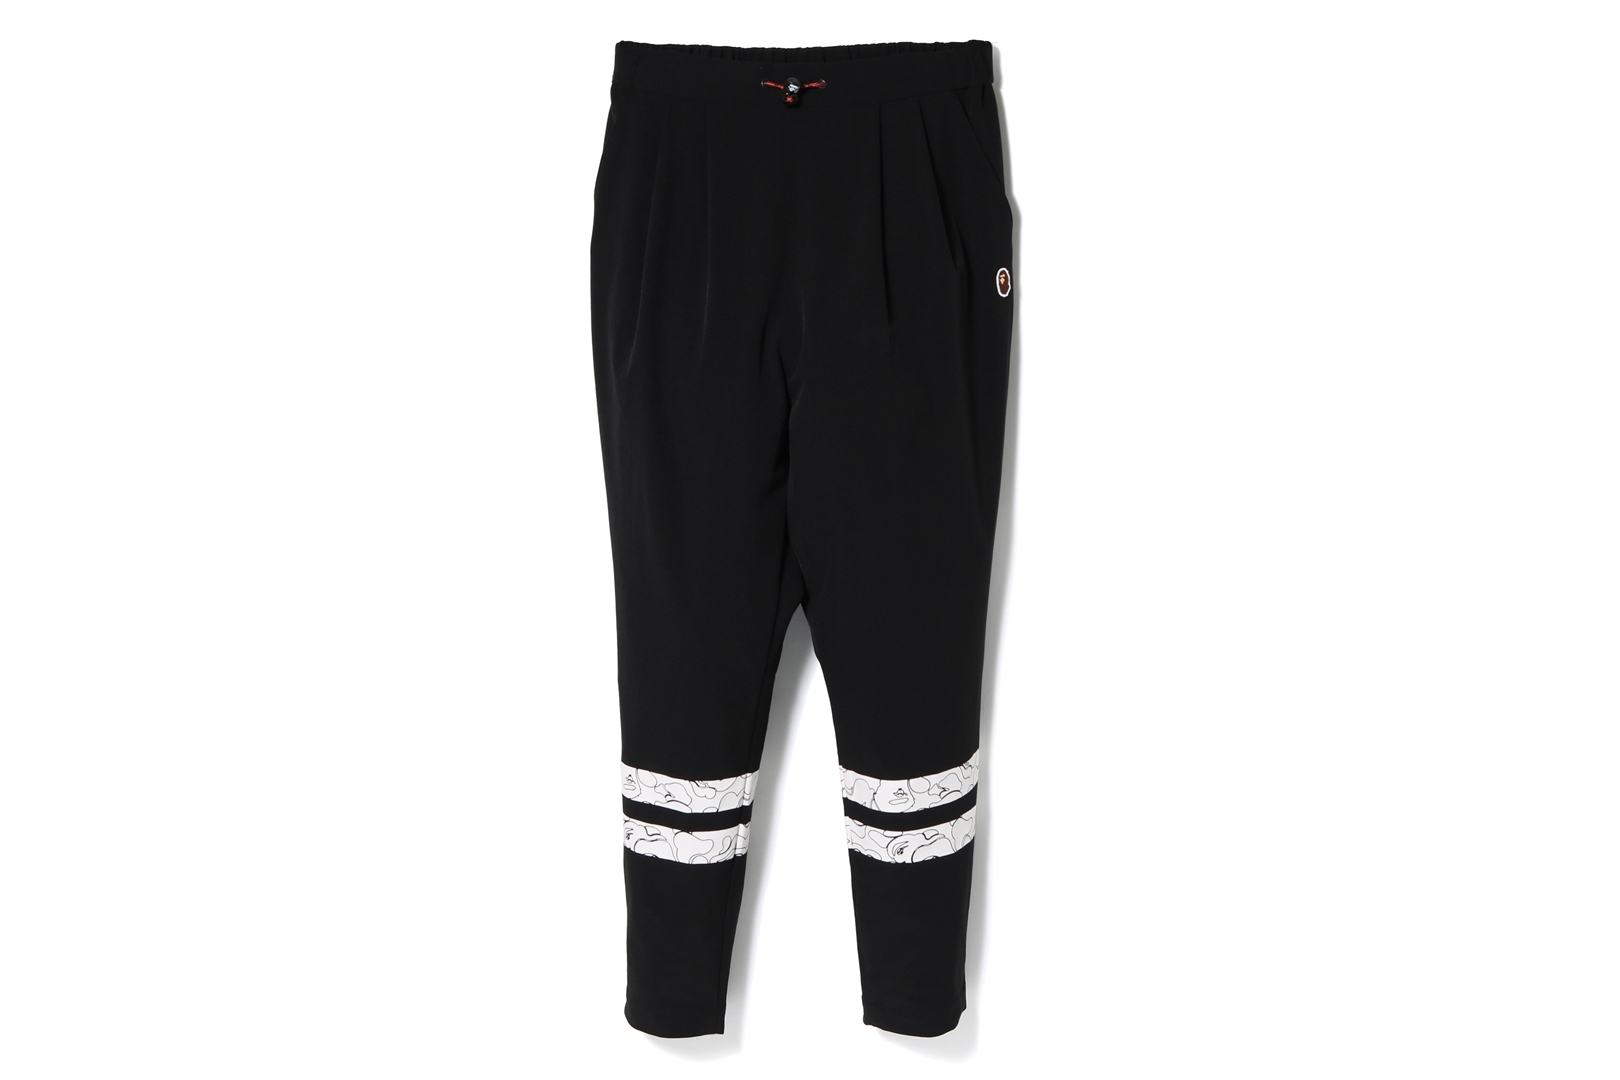 APE HEAD 2TUCK STRETCH TAPERED PANTS_a0174495_13010436.jpg